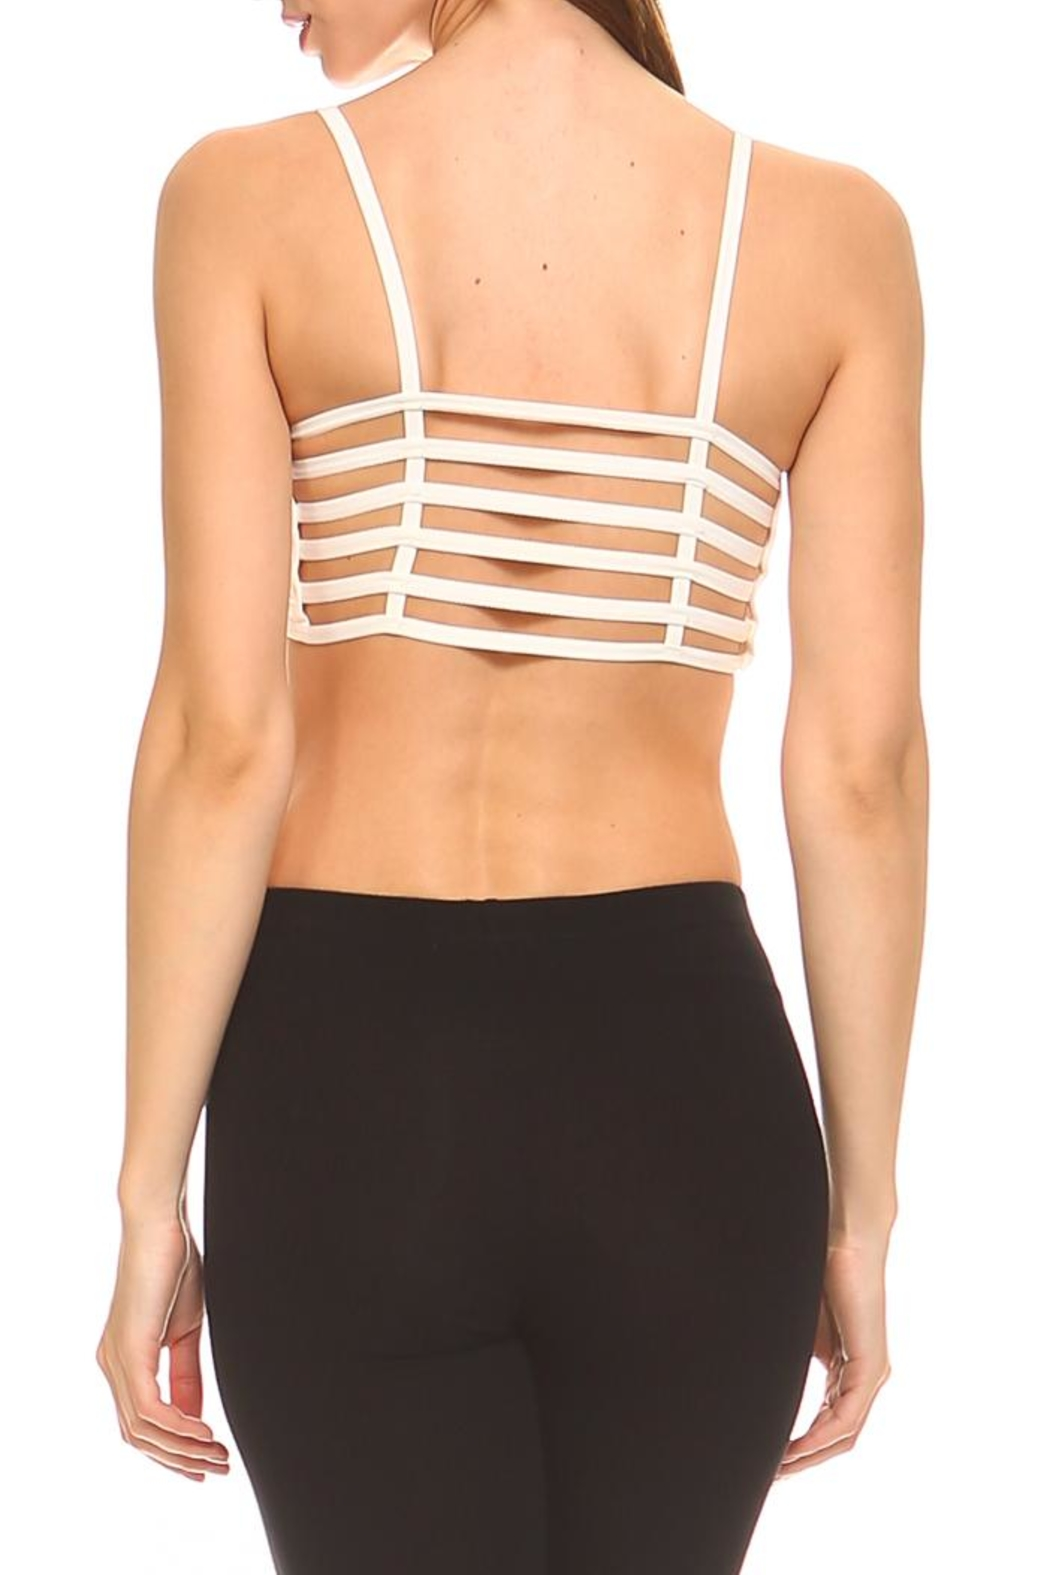 Racine Essential Seamless Bralette - Front Cropped Image